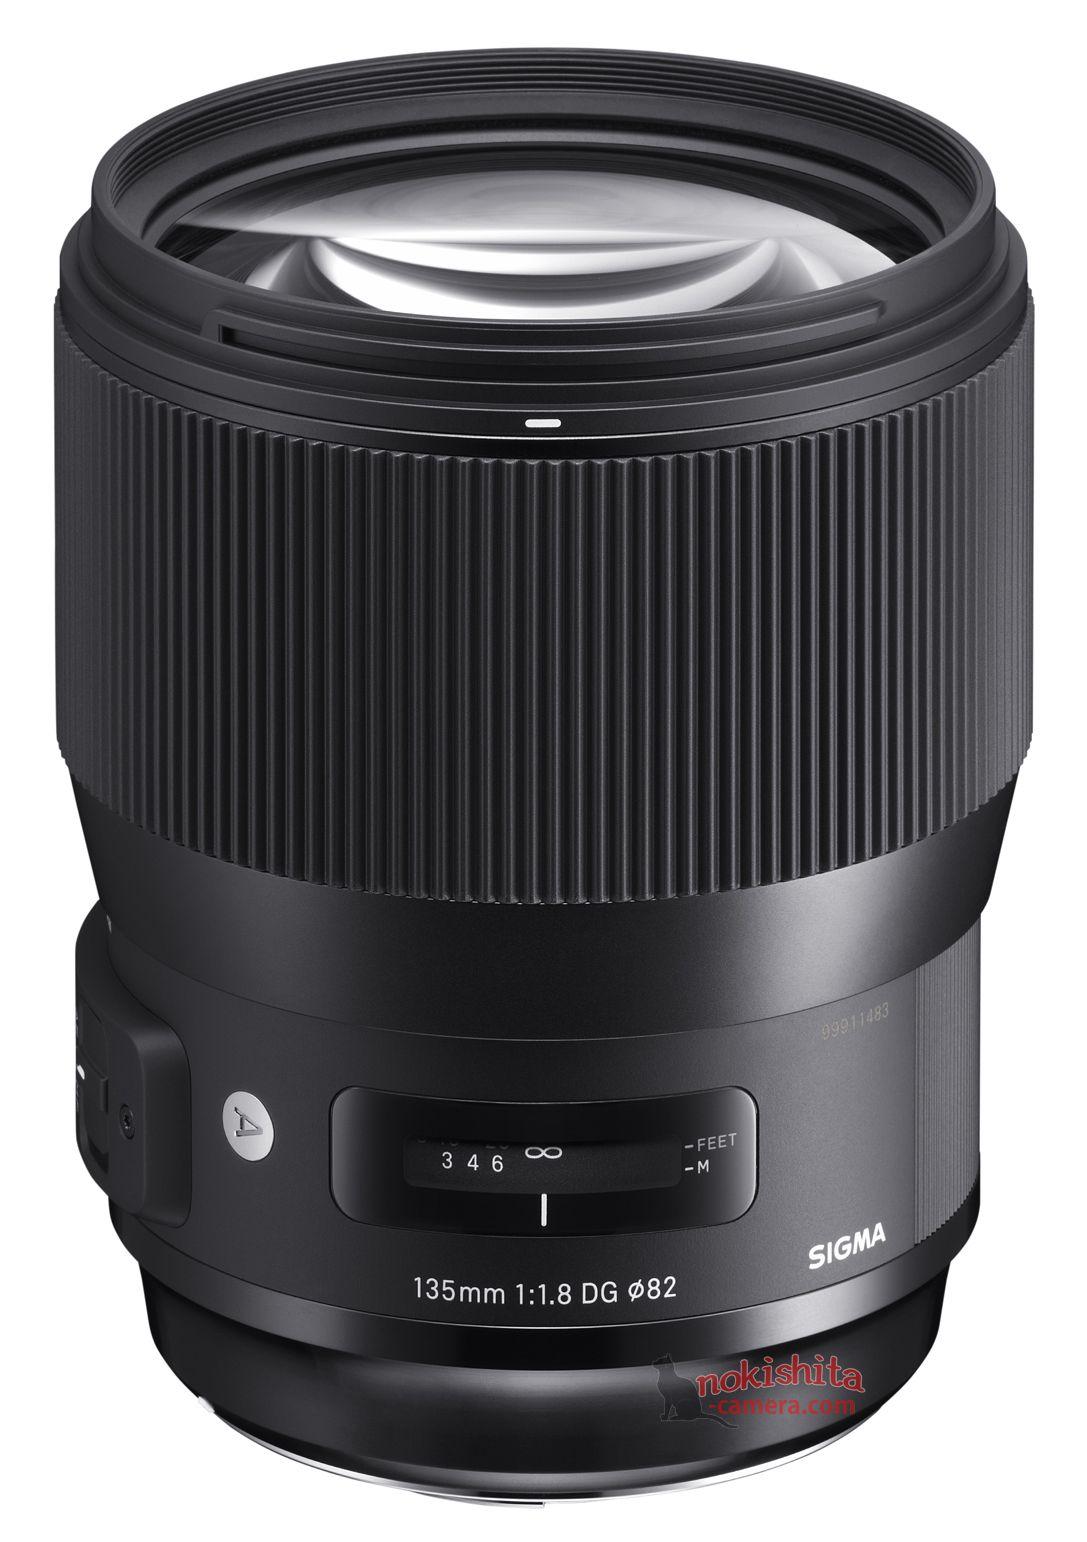 Sigma-135mm-f1.8-DG-HSM-Art-full-frame-DSLR-lens1